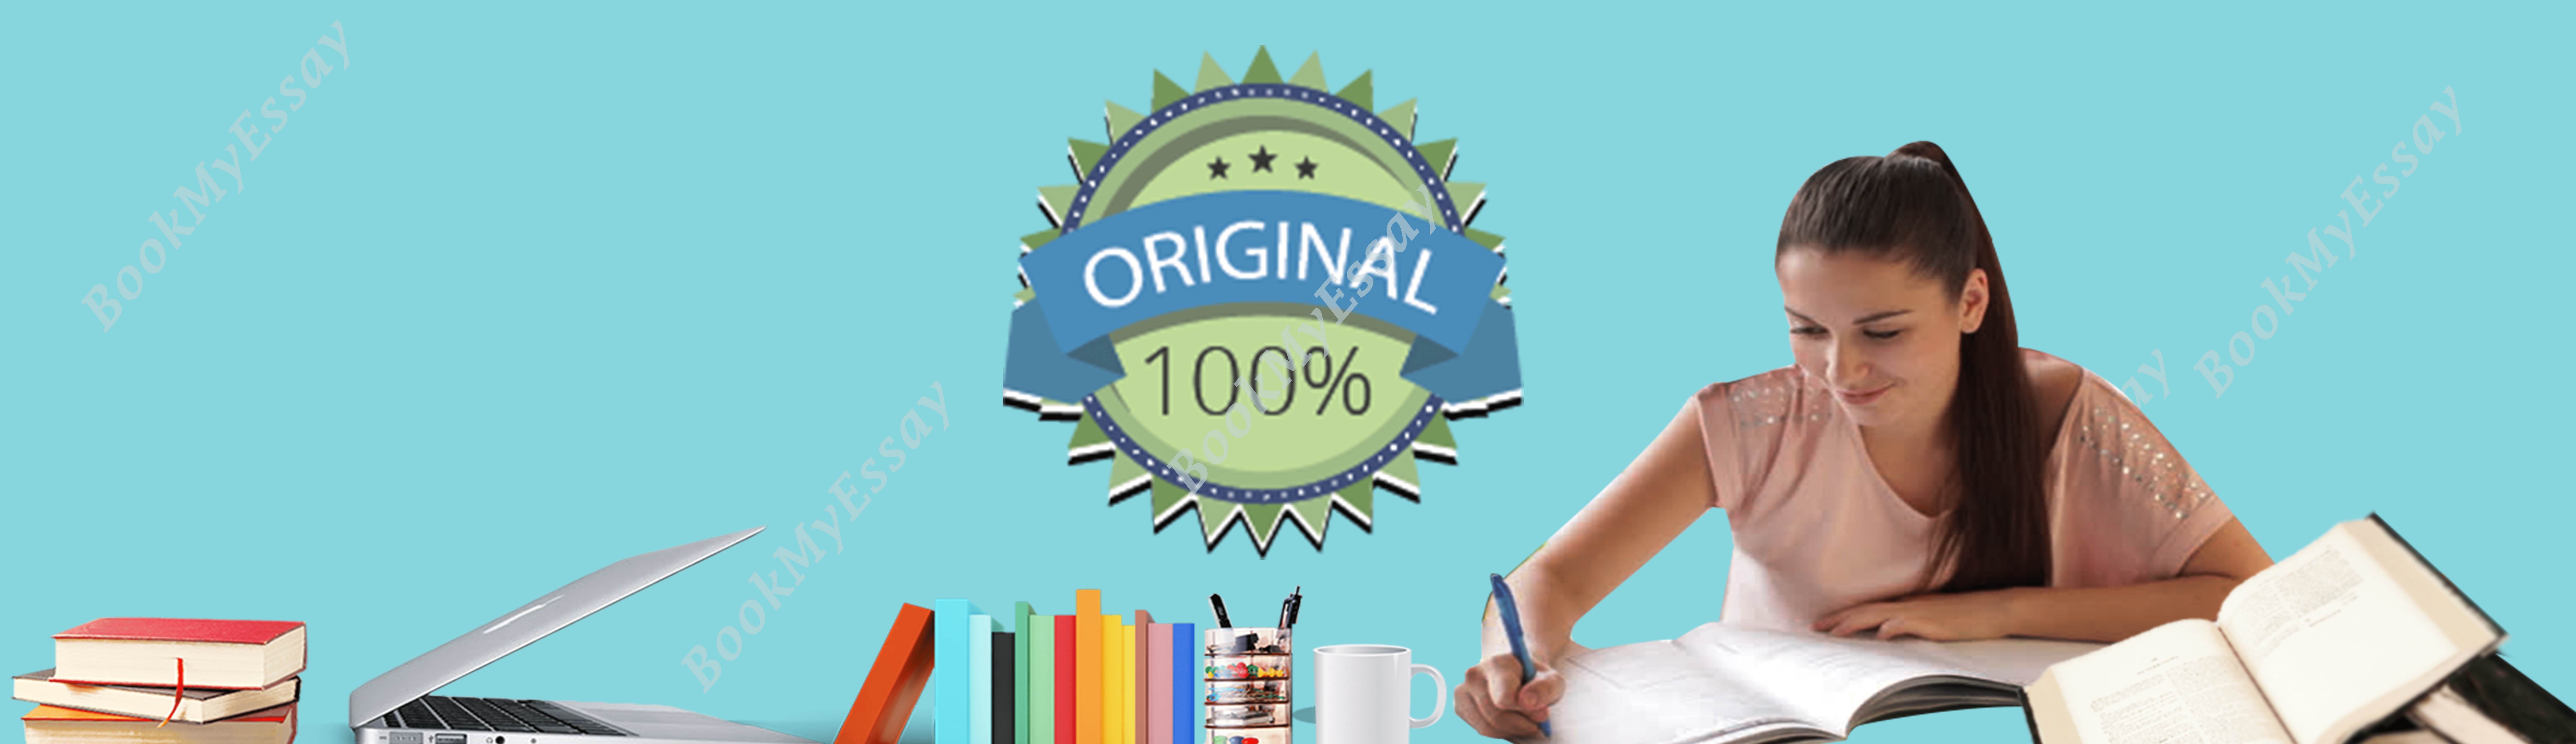 Plagiarism Free Essay Writing Service